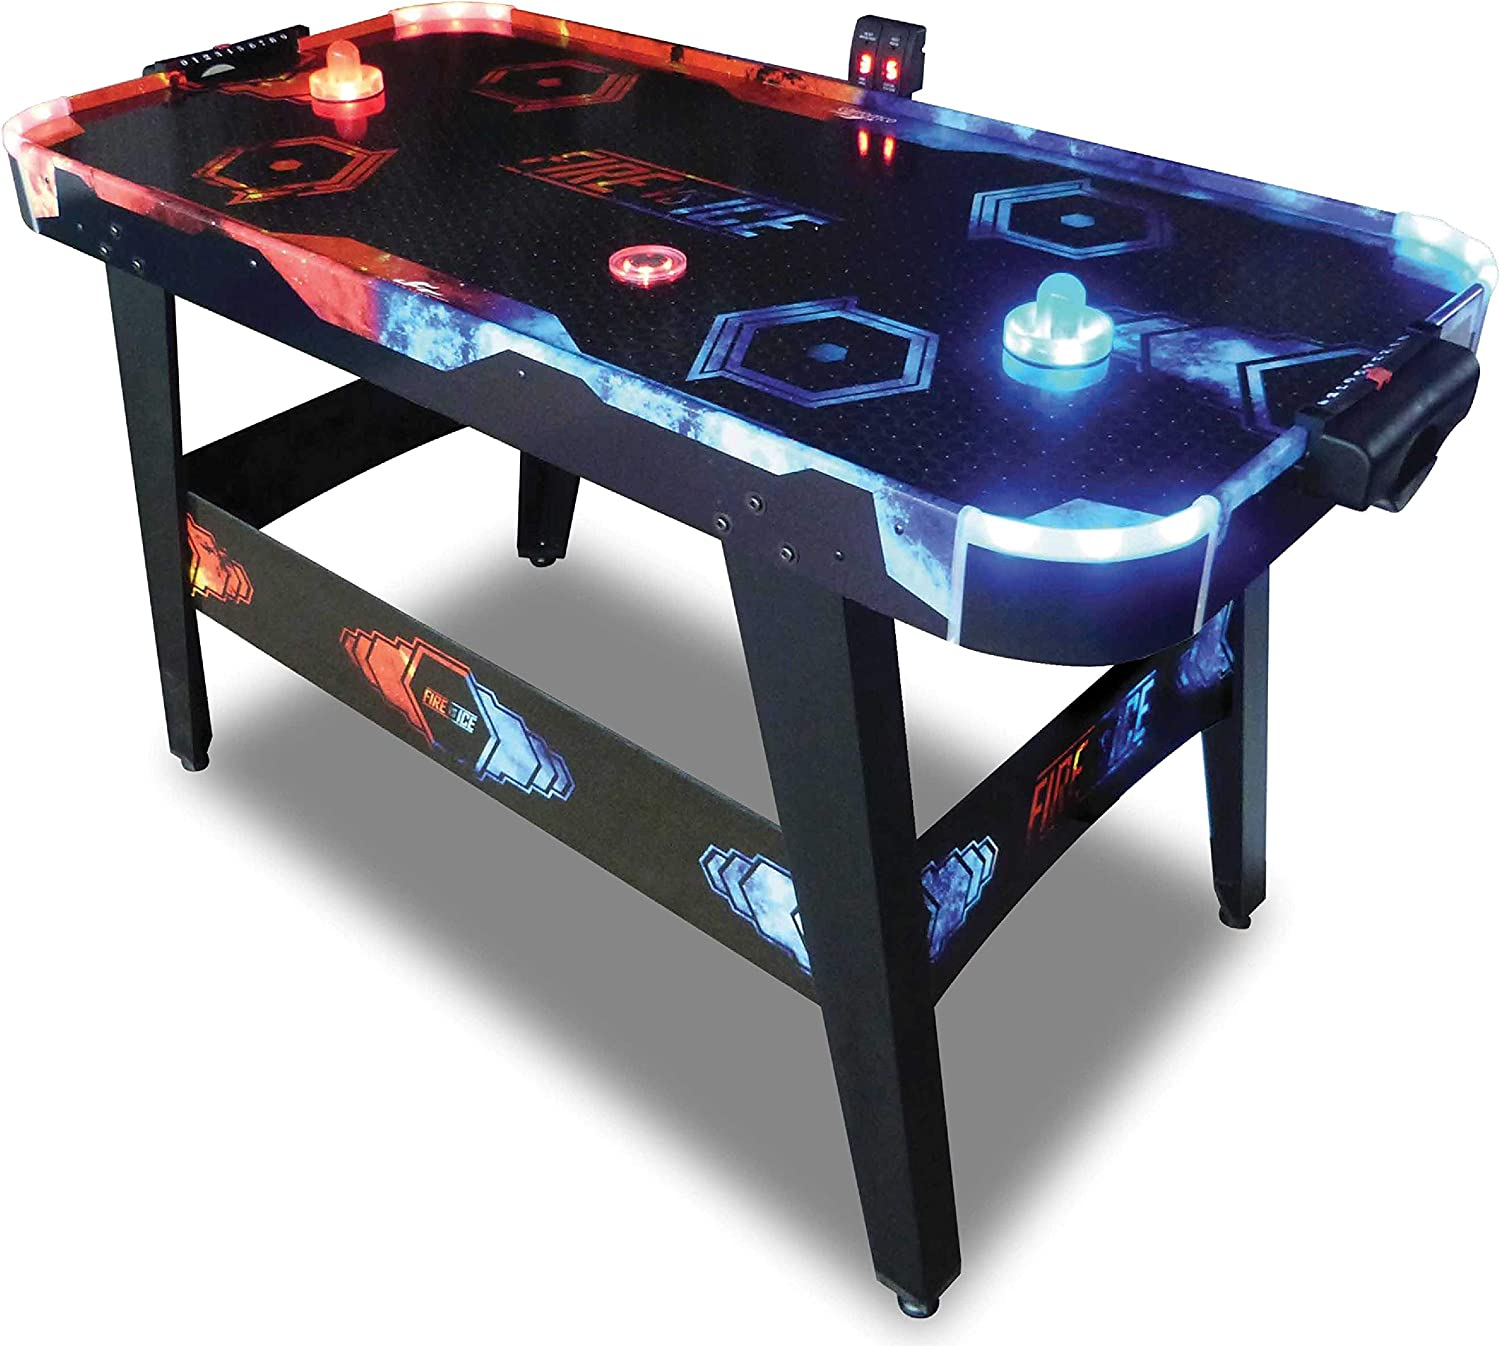 Carromco Airhockey Fire VS Ice, Negro, Uni: Amazon.es: Deportes y ...